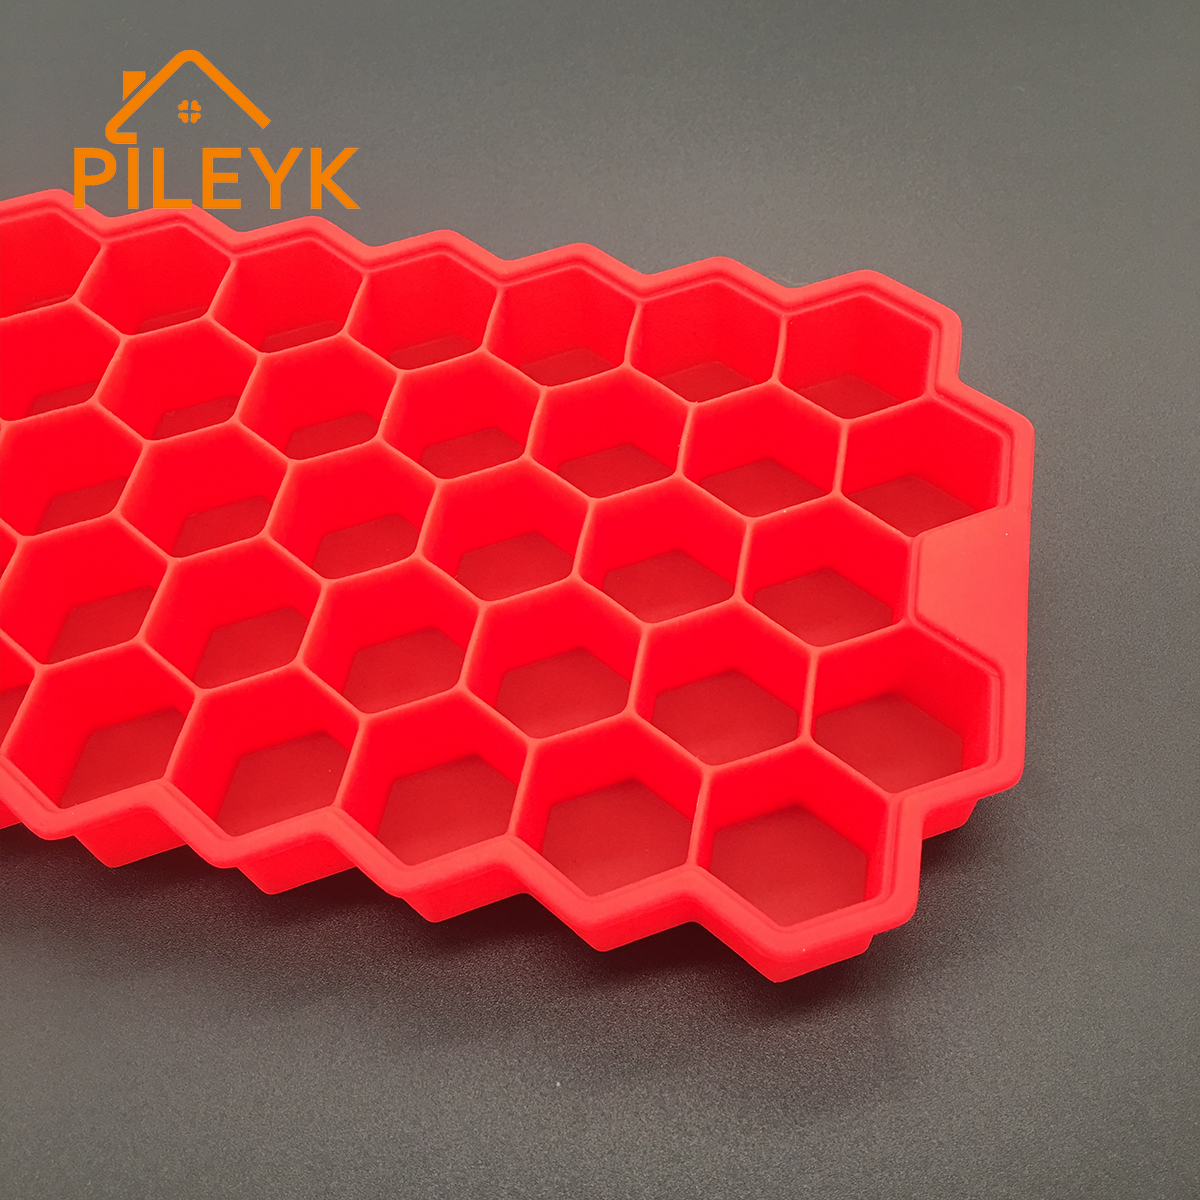 Fda/lfgb 37 Cavity Silicone Hexagon Ice Cube Tray Honeycomb Shaped Ice Cream Maker Supplies